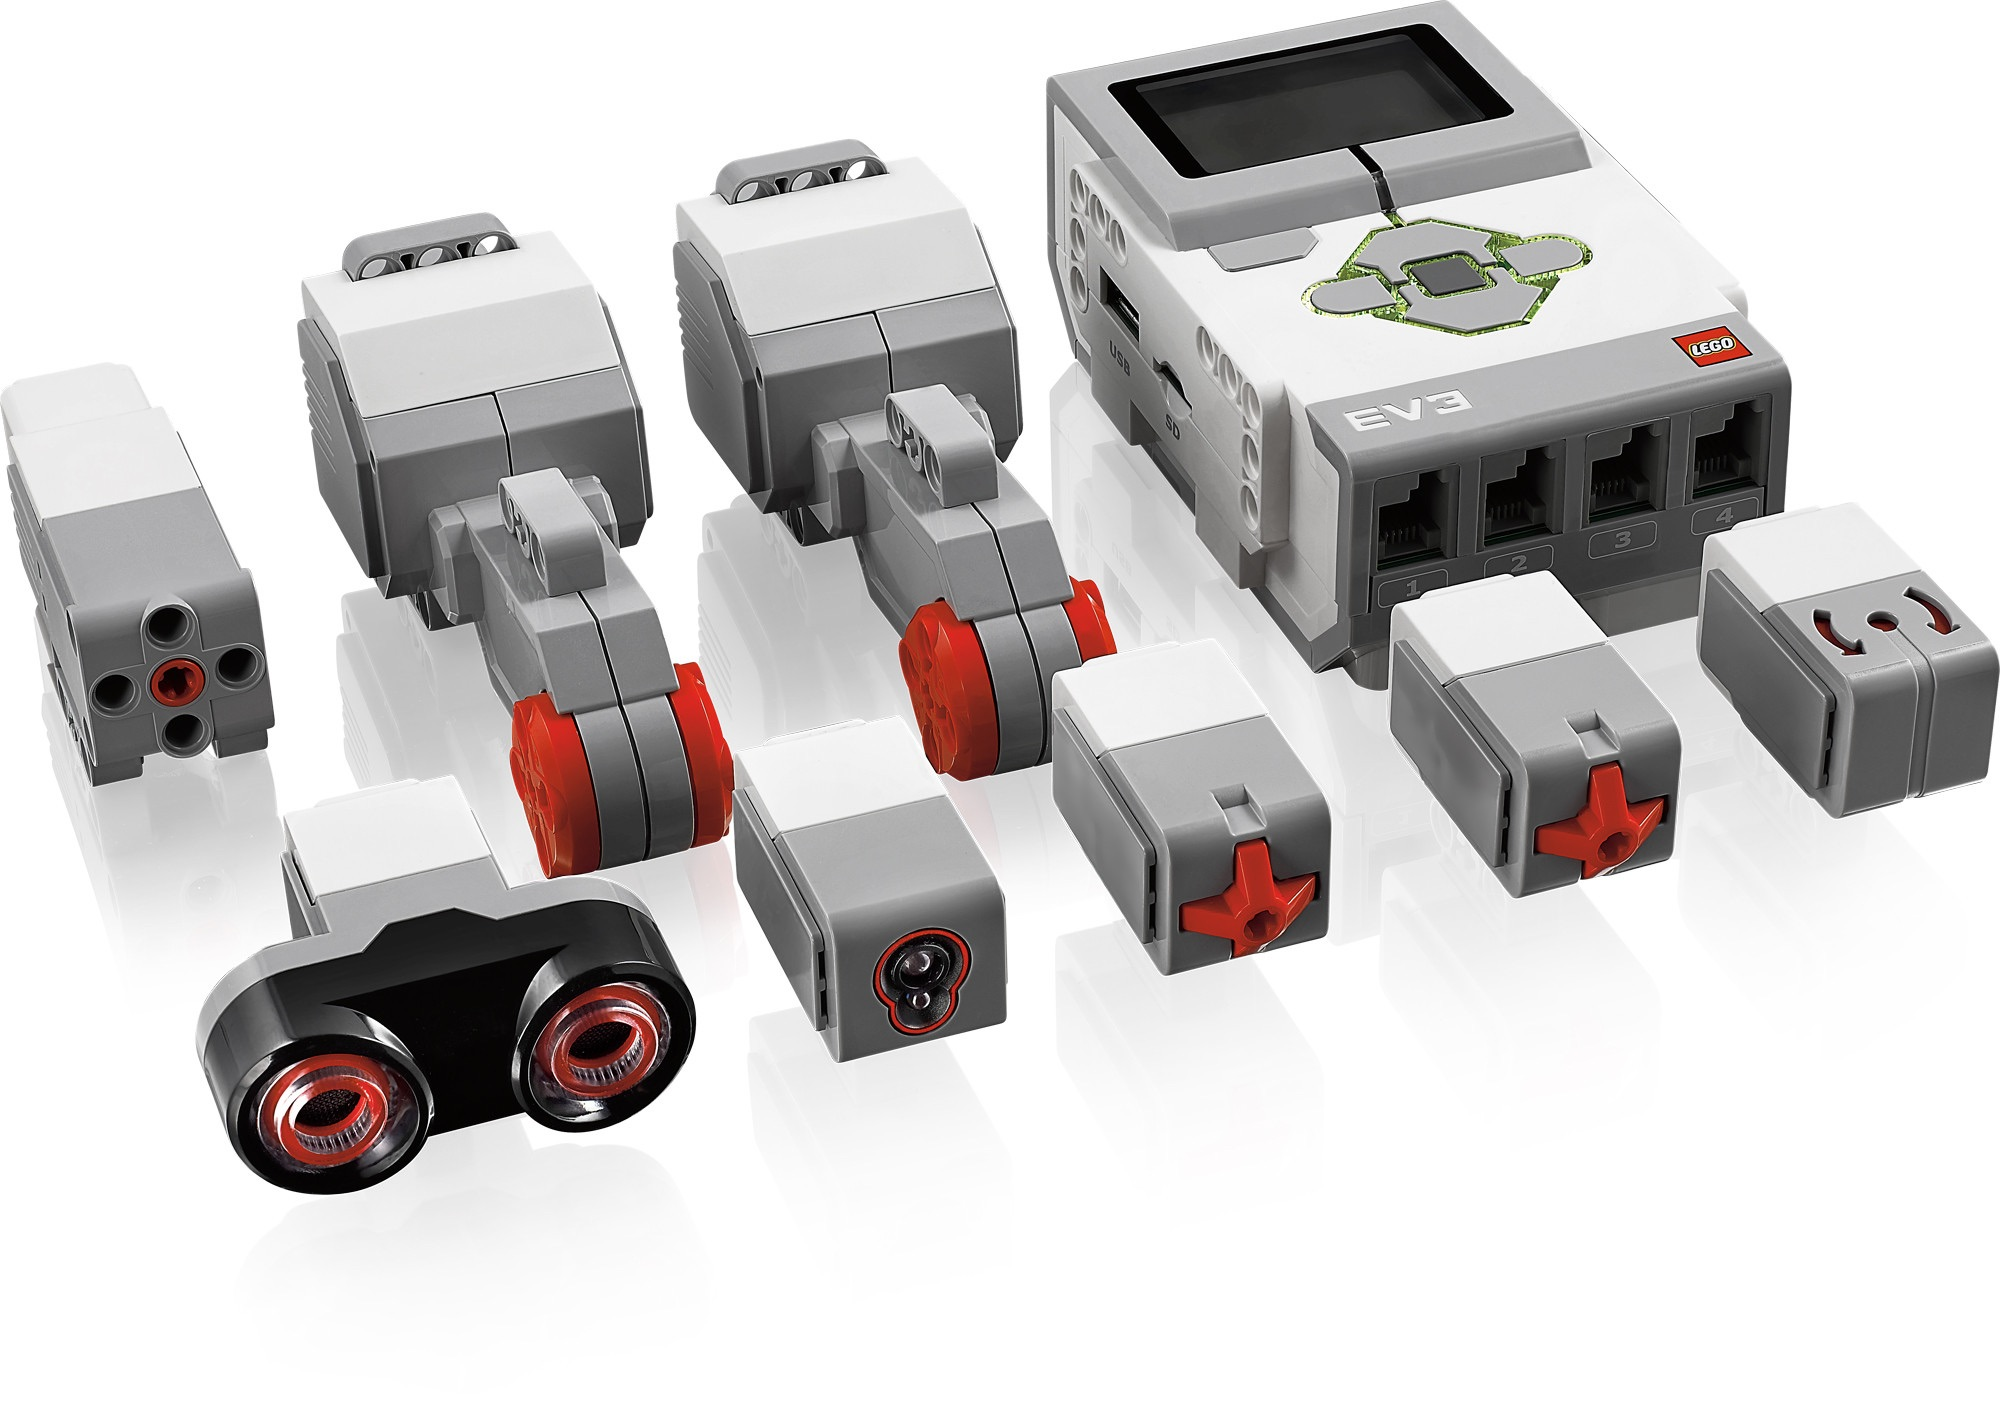 LEGO Mindstorms EV3 base